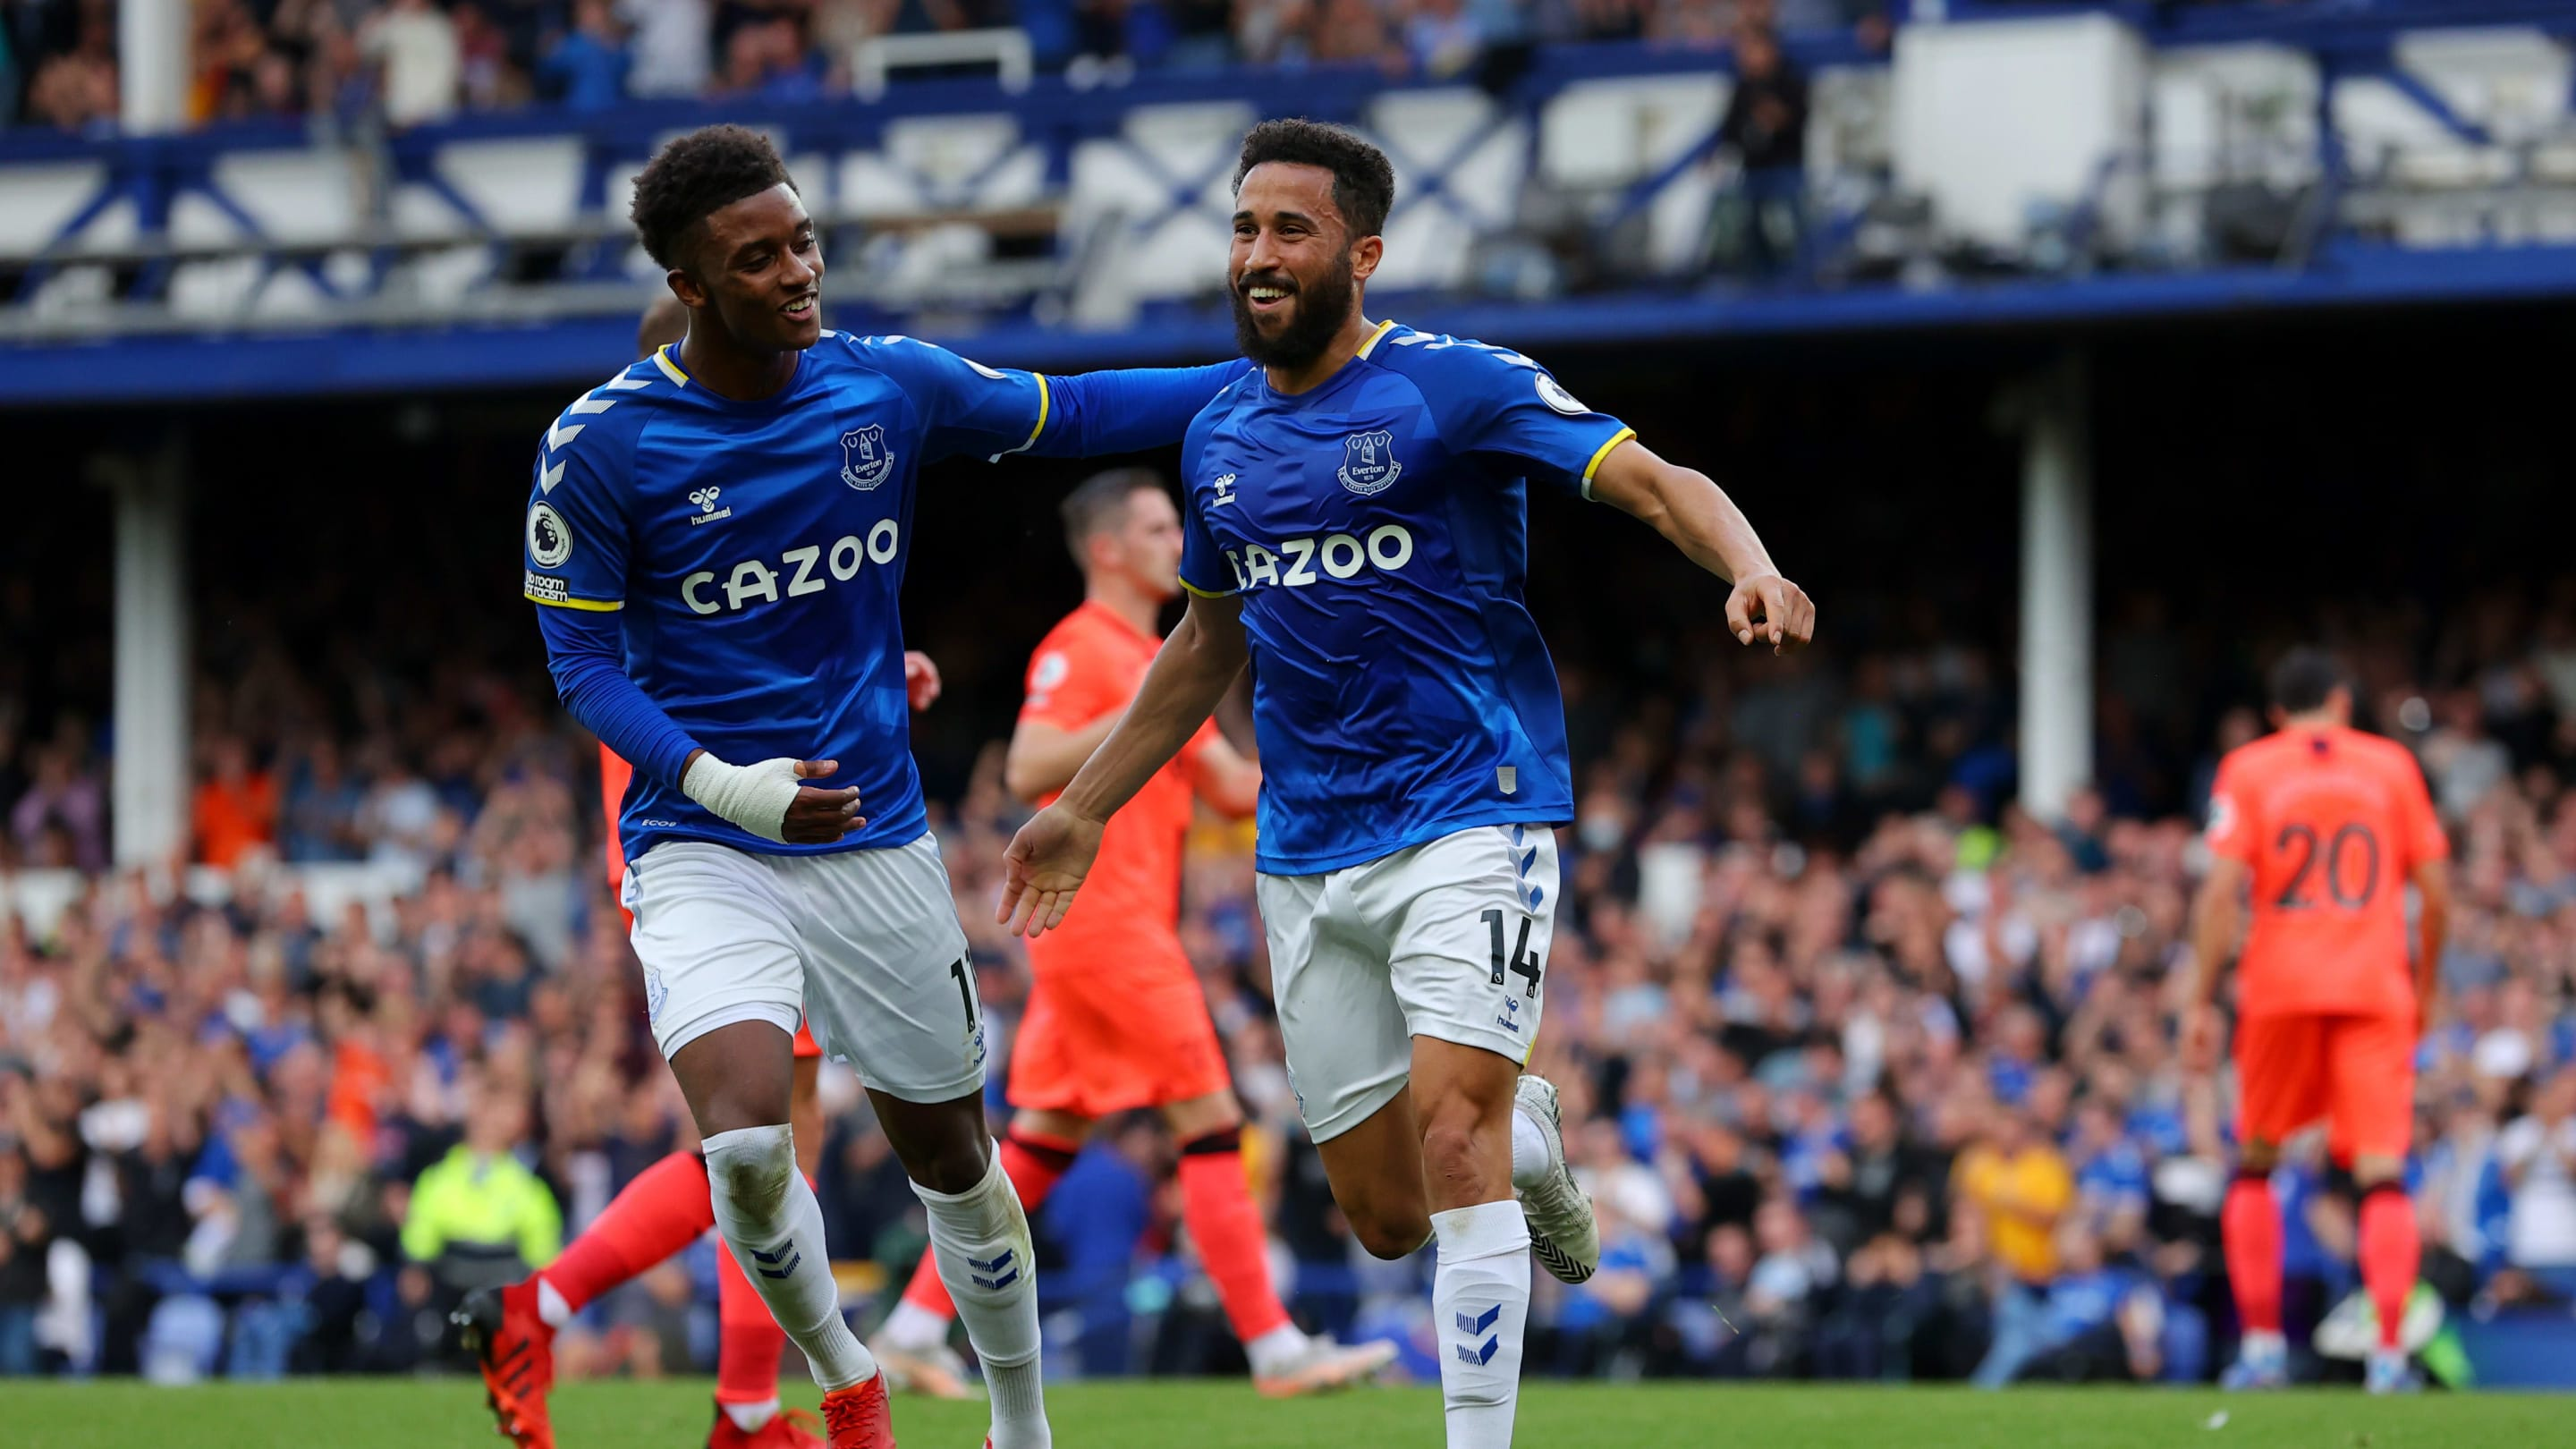 Everton show their collective strength in the absence of key players